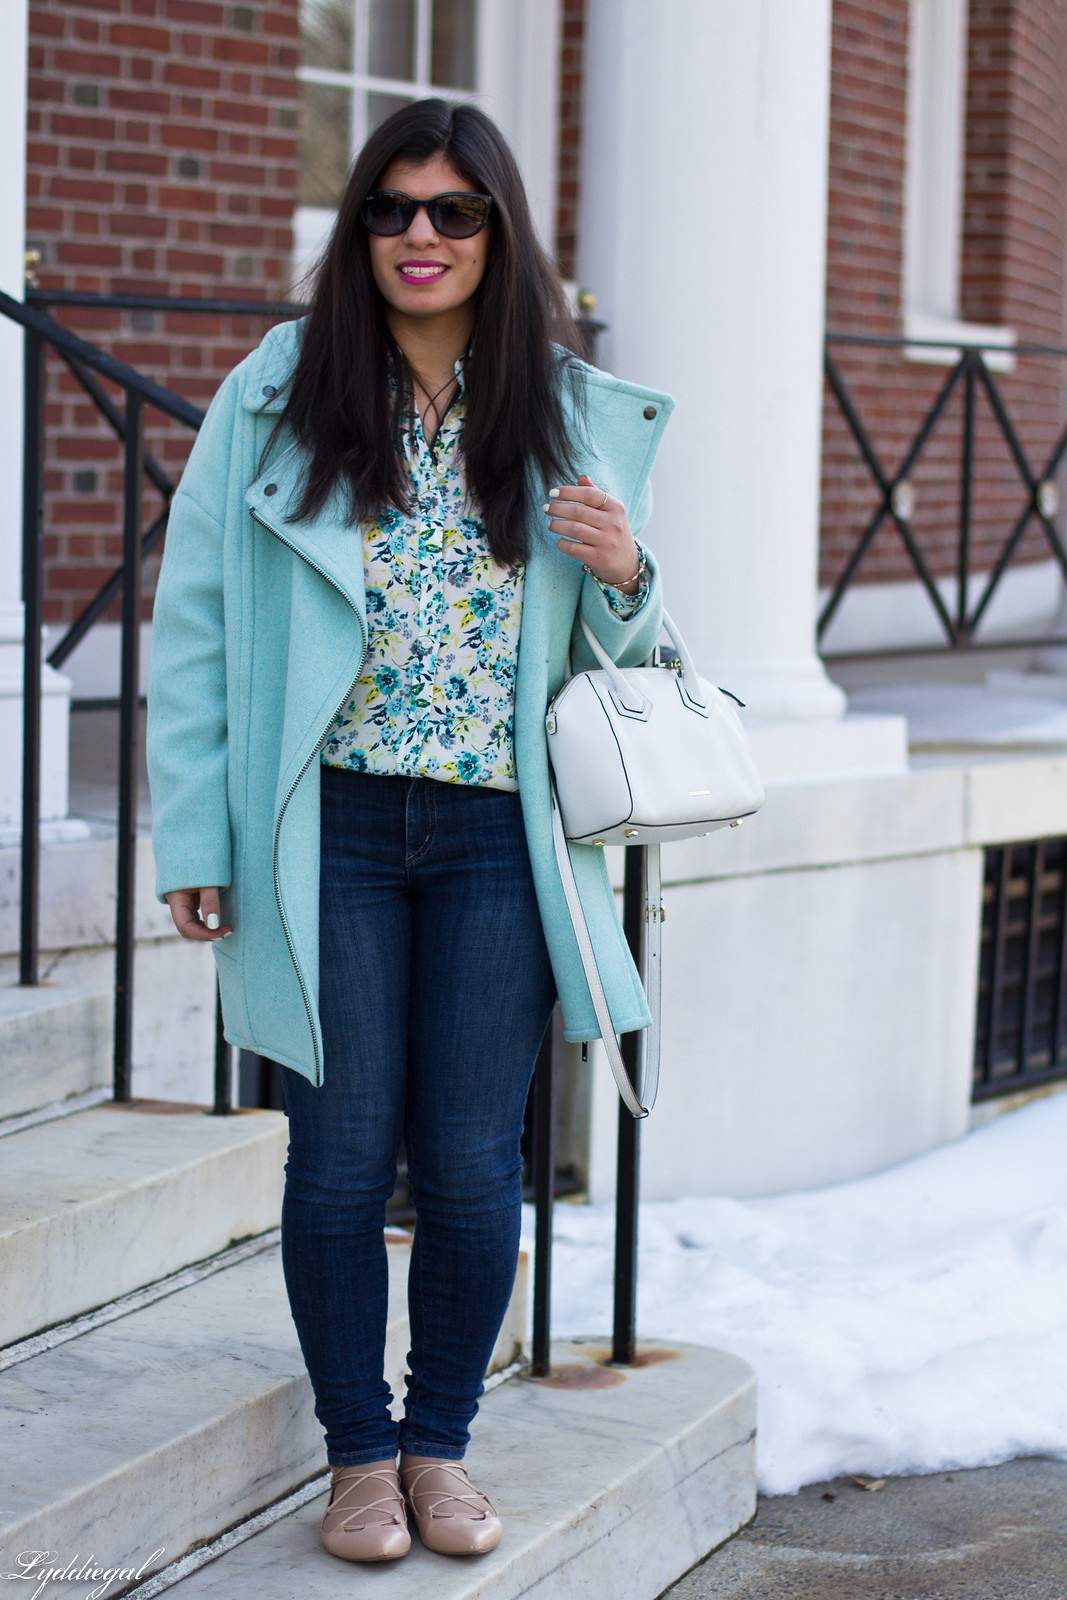 mint green cocoon coat, floral blouse, lace up flats, spring outfit-2.jpg